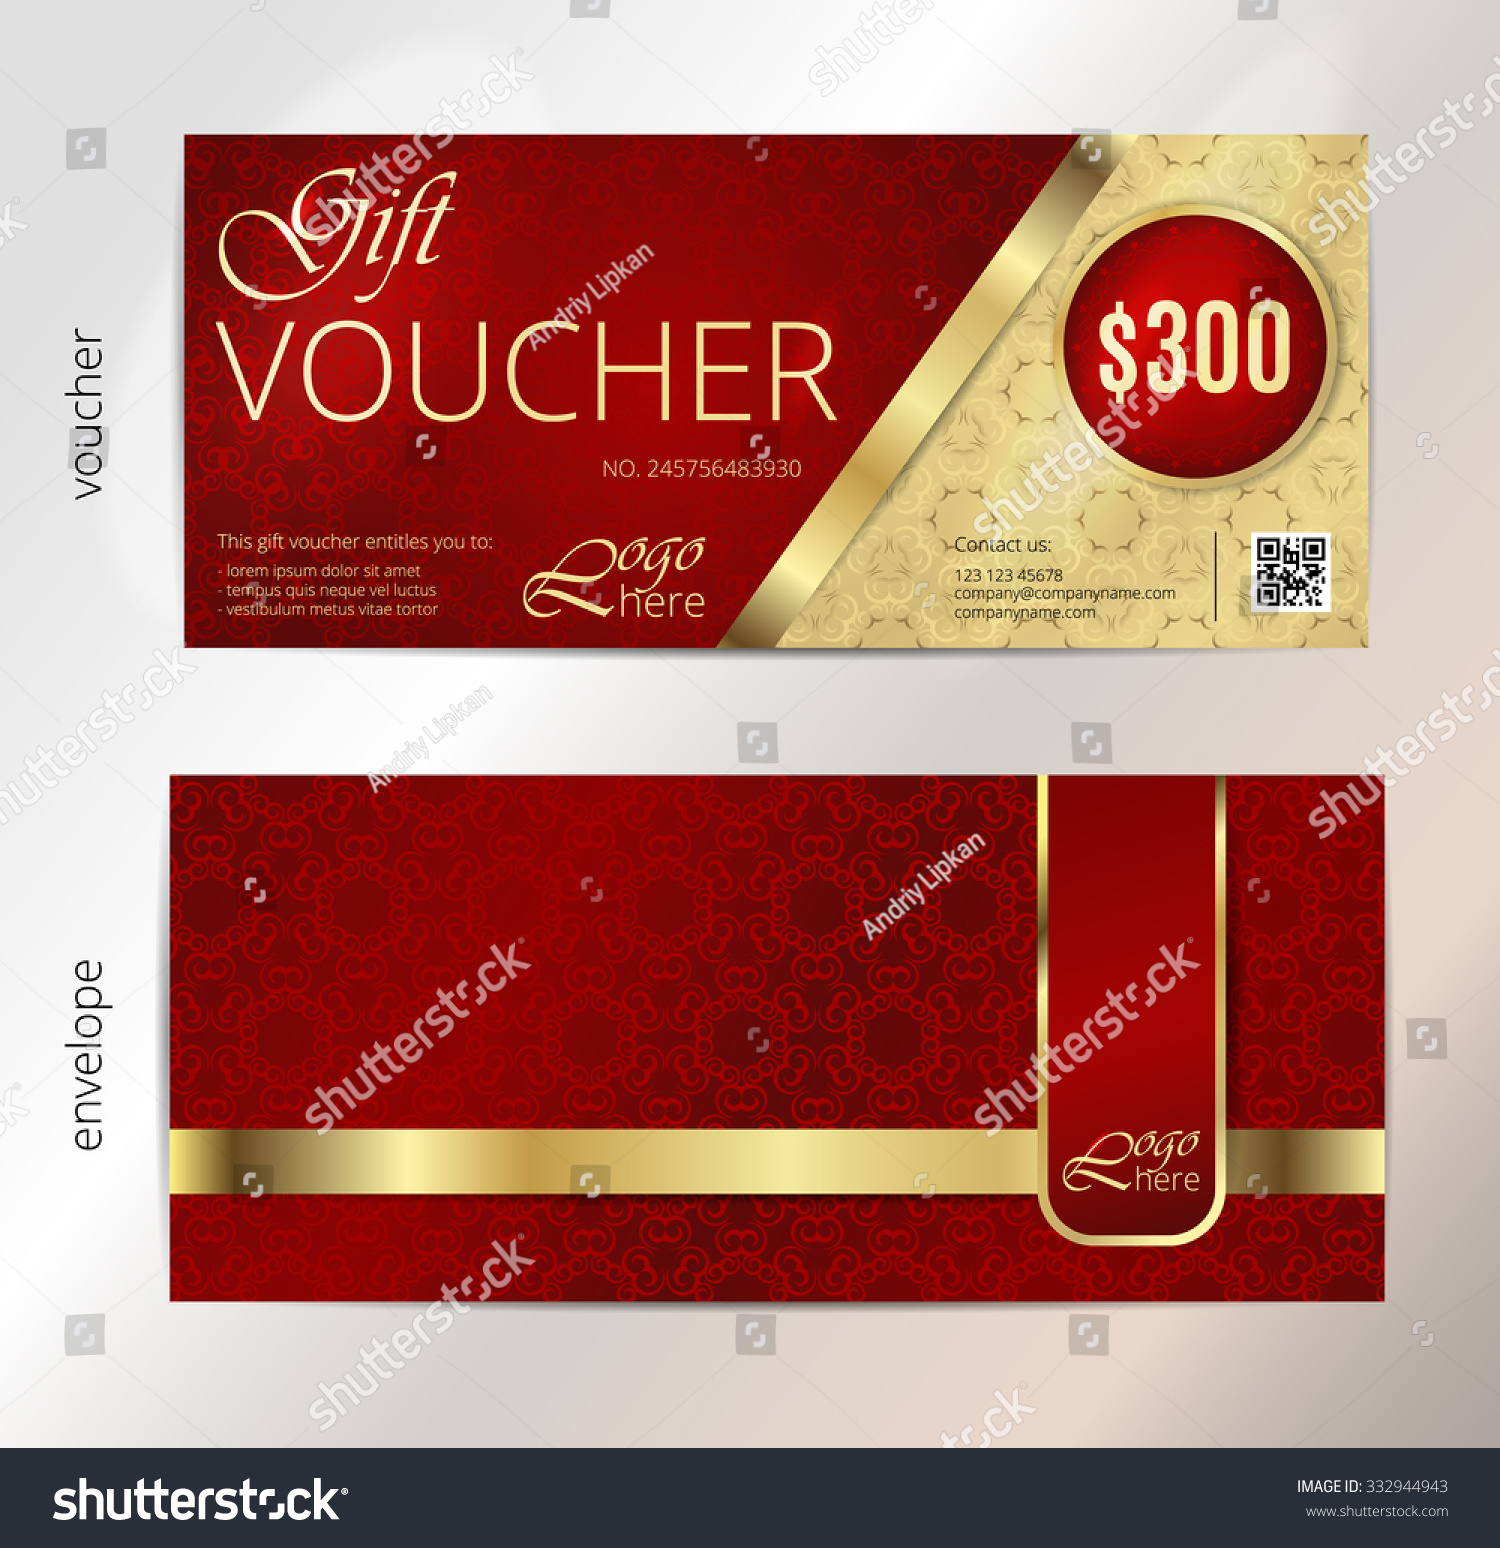 Voucher Gift Certificate Coupon Template Vintage Stock Vector